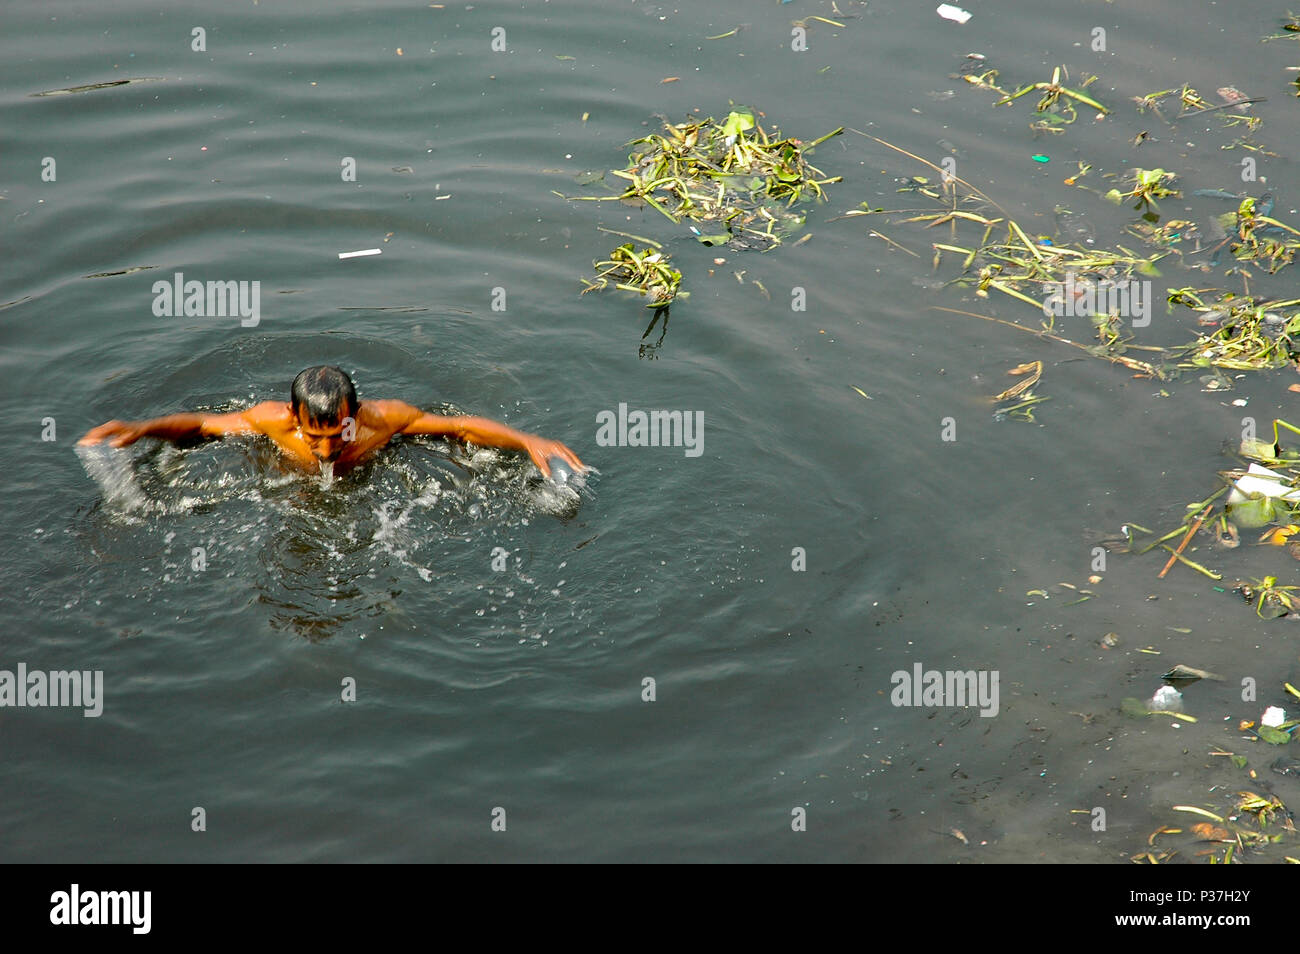 A man taking bath in the poisonous and dirty water of the